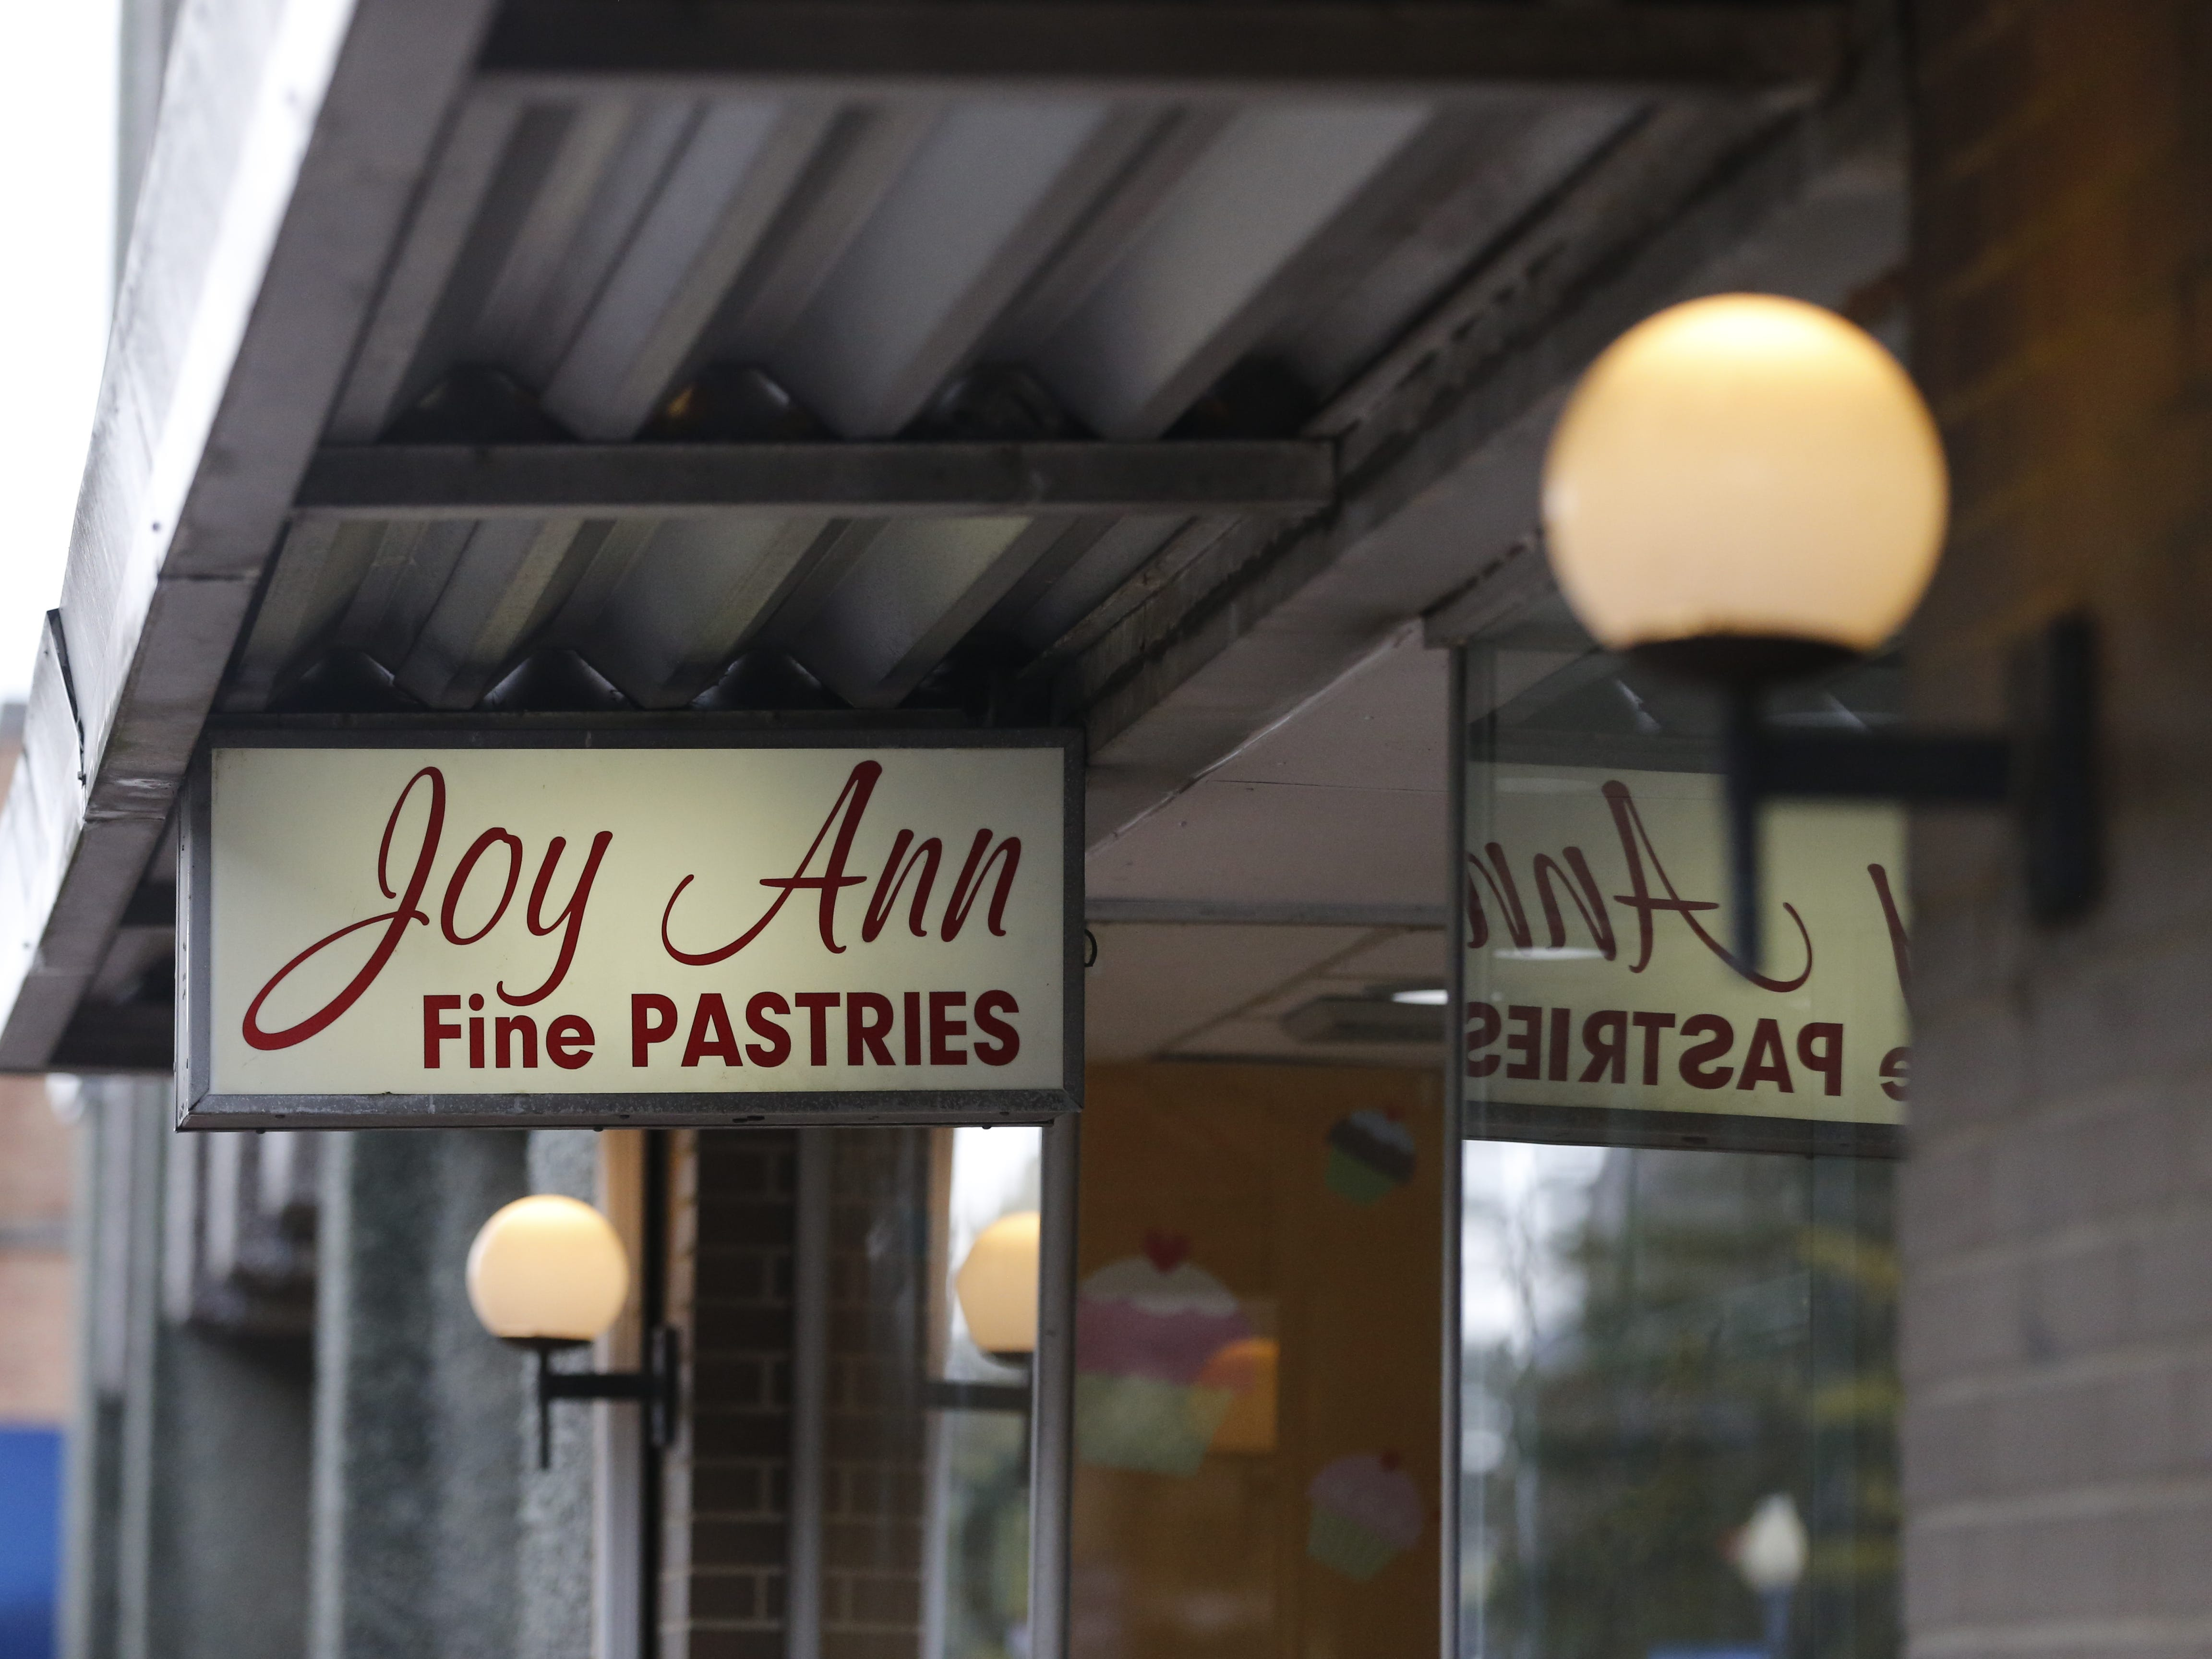 Joy Ann Cake Shop has been an iconic part of downtown Richmond for decades and is one of its oldest remaining businesses.